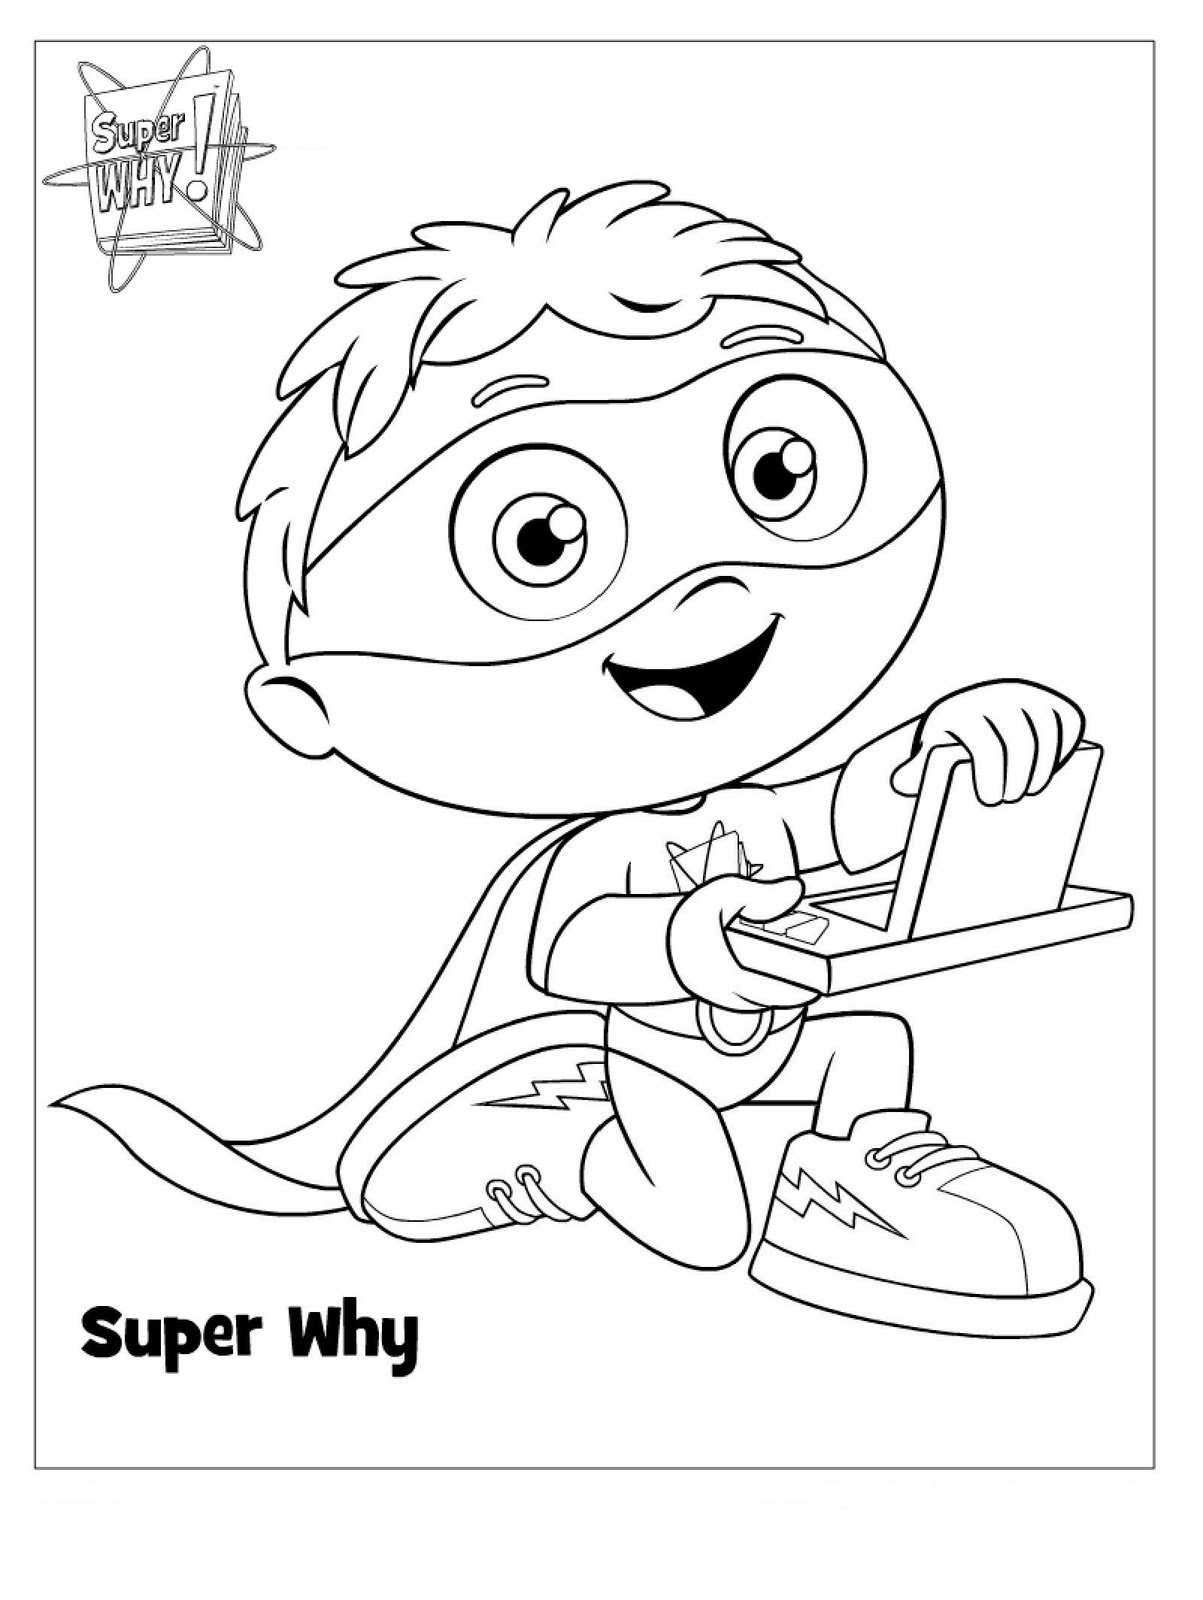 super why christmas coloring pages - photo#1